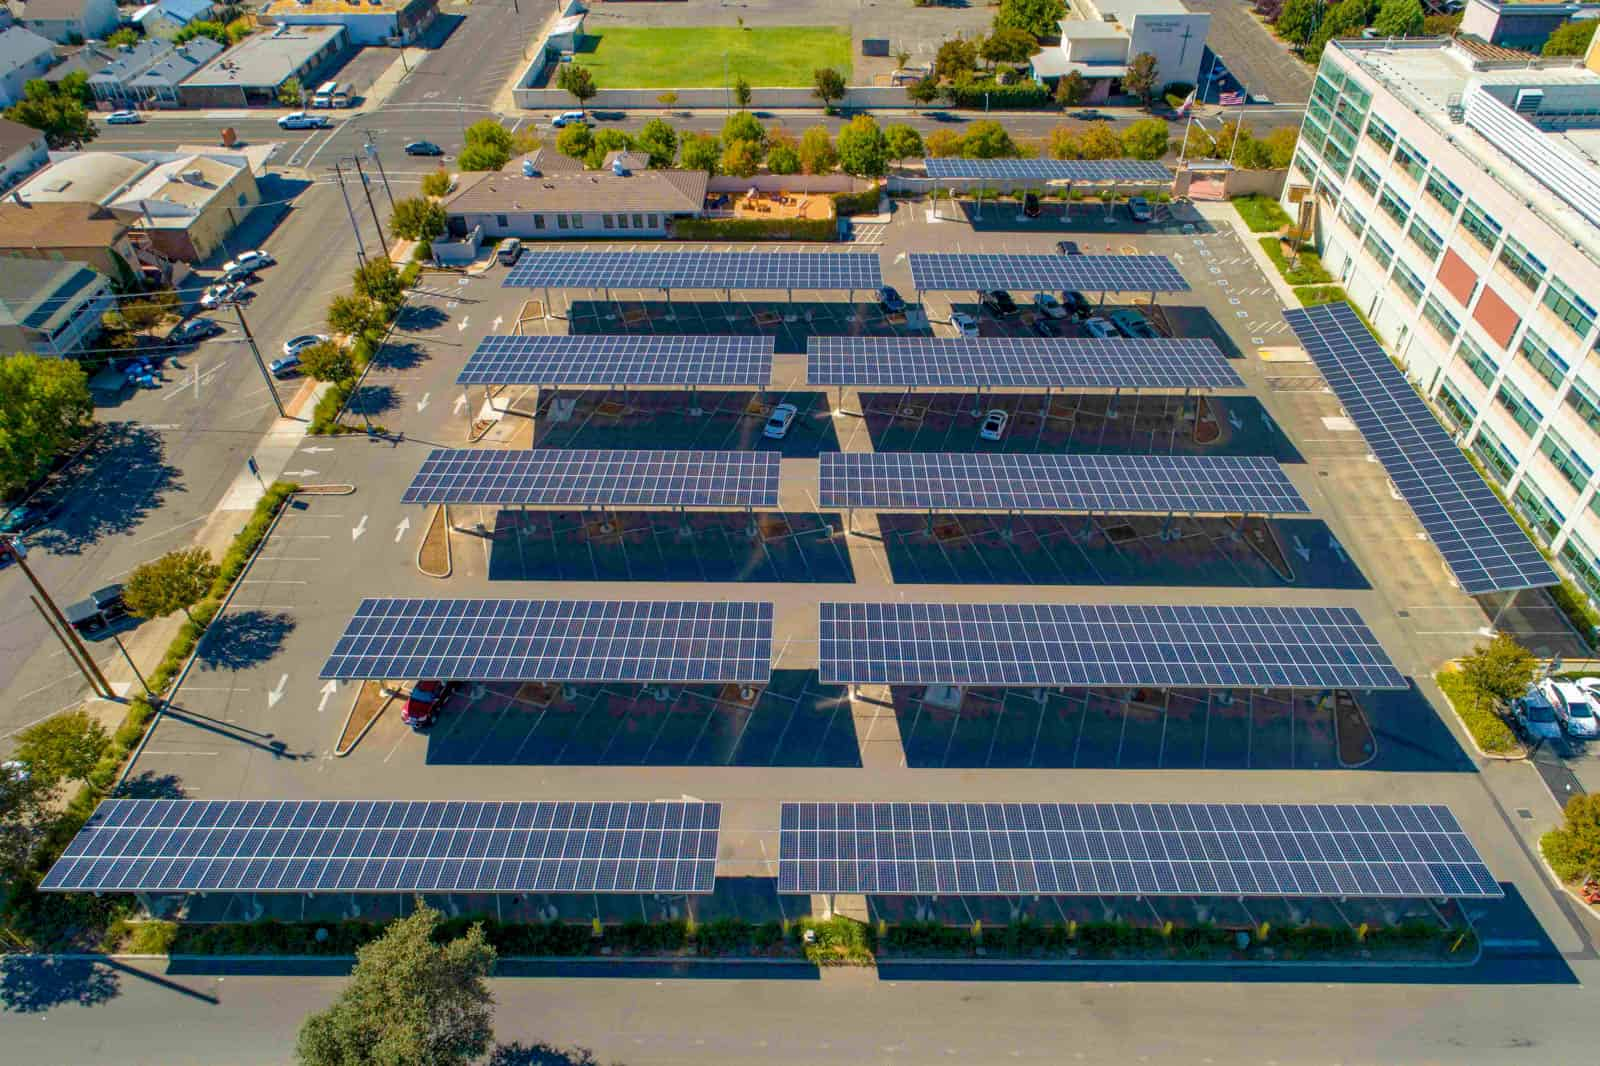 aerial drone photo of solar panel array shading parking spots in Marysville, California